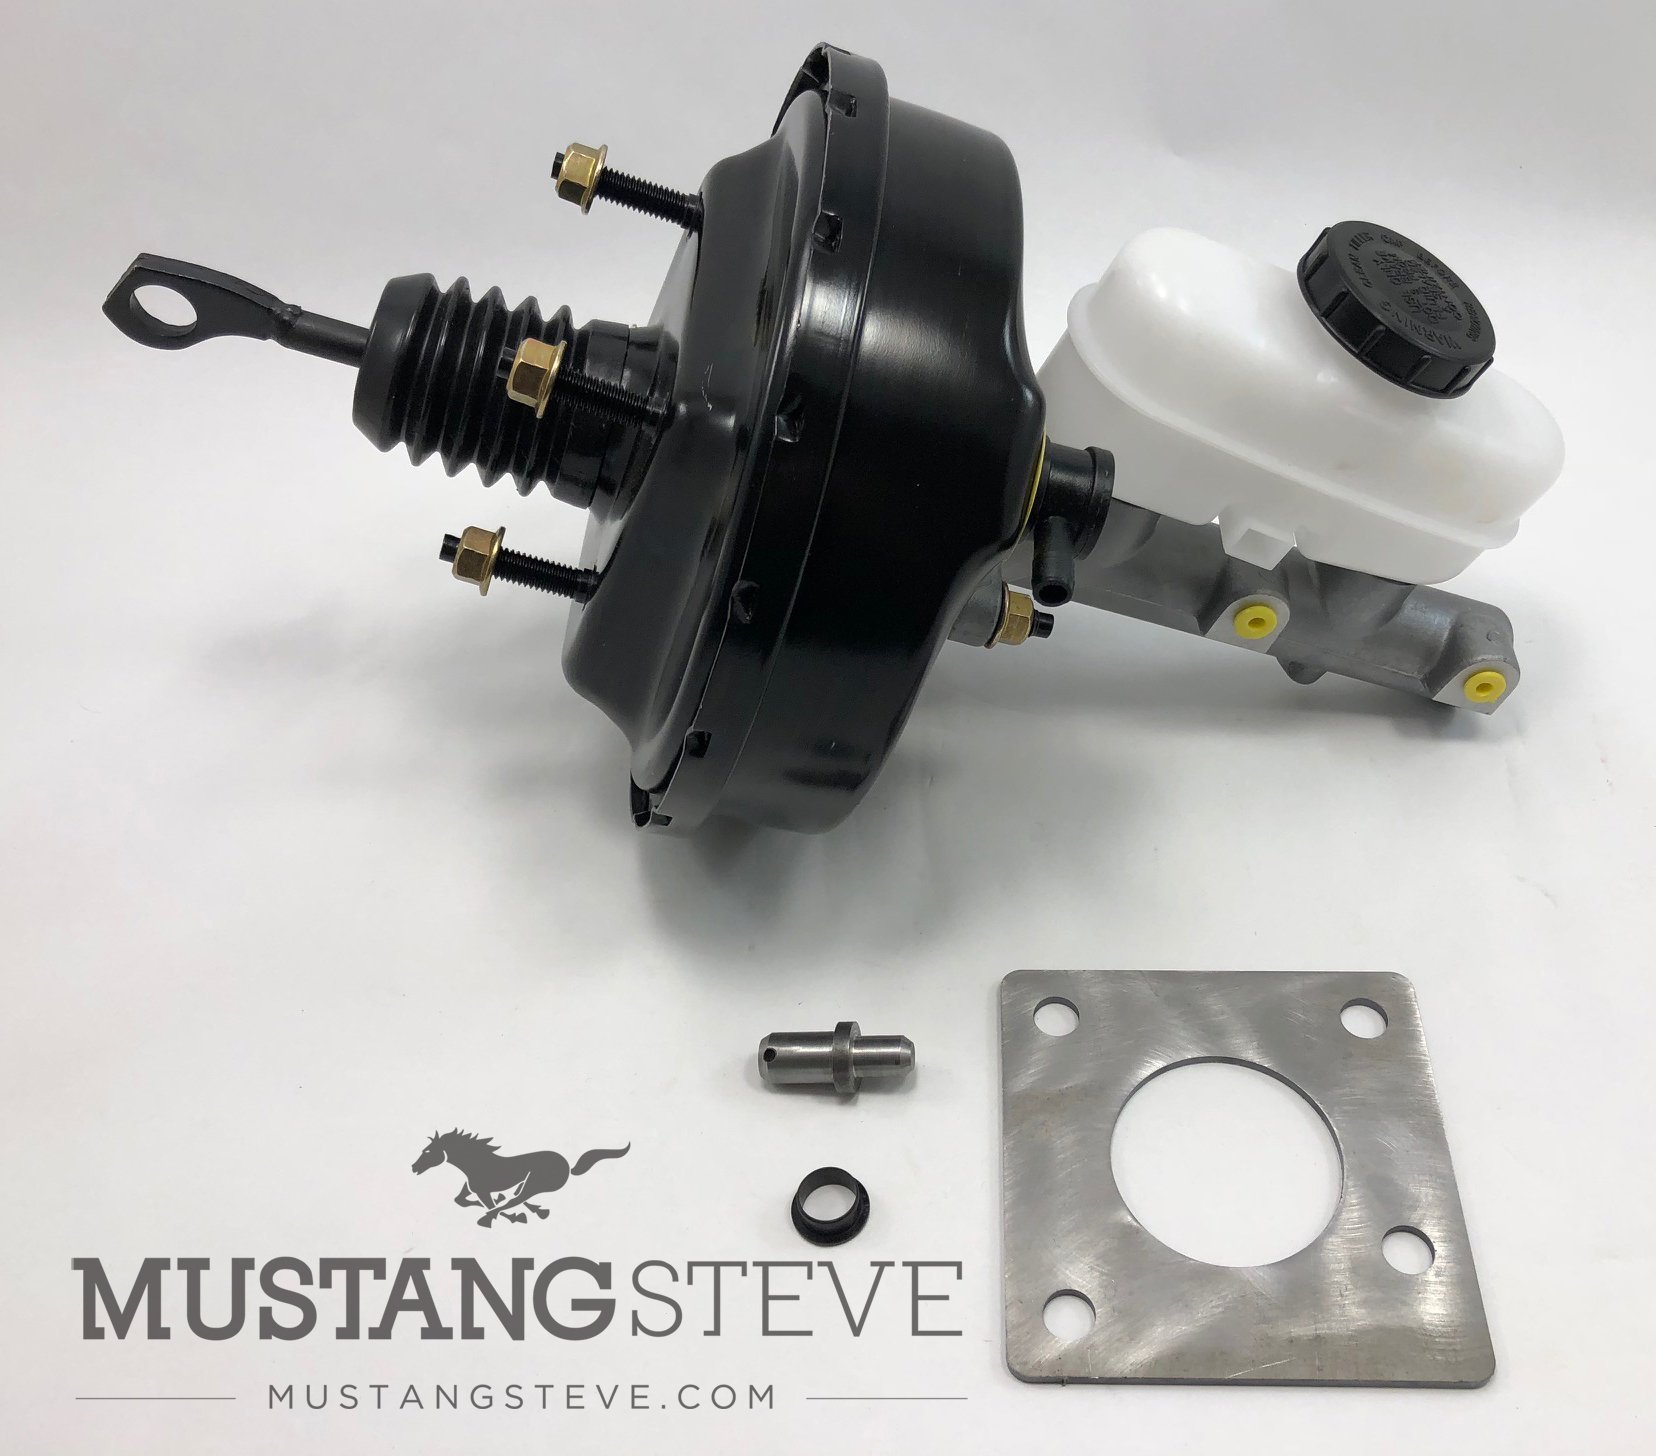 65-66 Mustang Power Brake Upgrade with All Wheel Disc Brakes